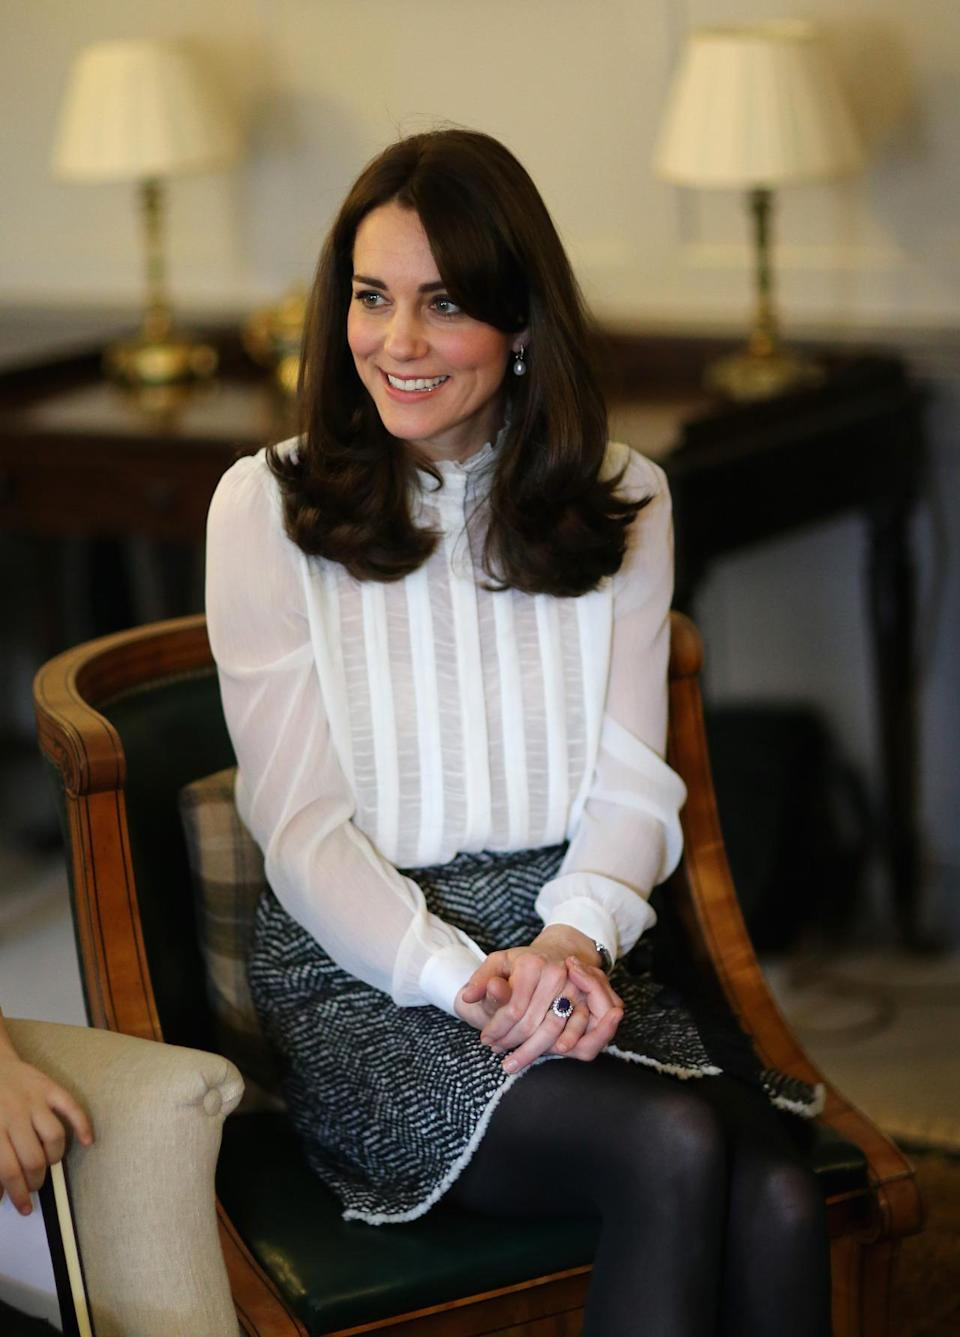 <p>Dressed in a vintage-inspired blouse from Reiss and a boucle wool skirt by Dolce & Gabbana, Kate launched the Young Minds Matter initiative. Black tights and Stuart Weitzman heels finished off the outfit.</p><p><i>[Photo: PA]</i></p>